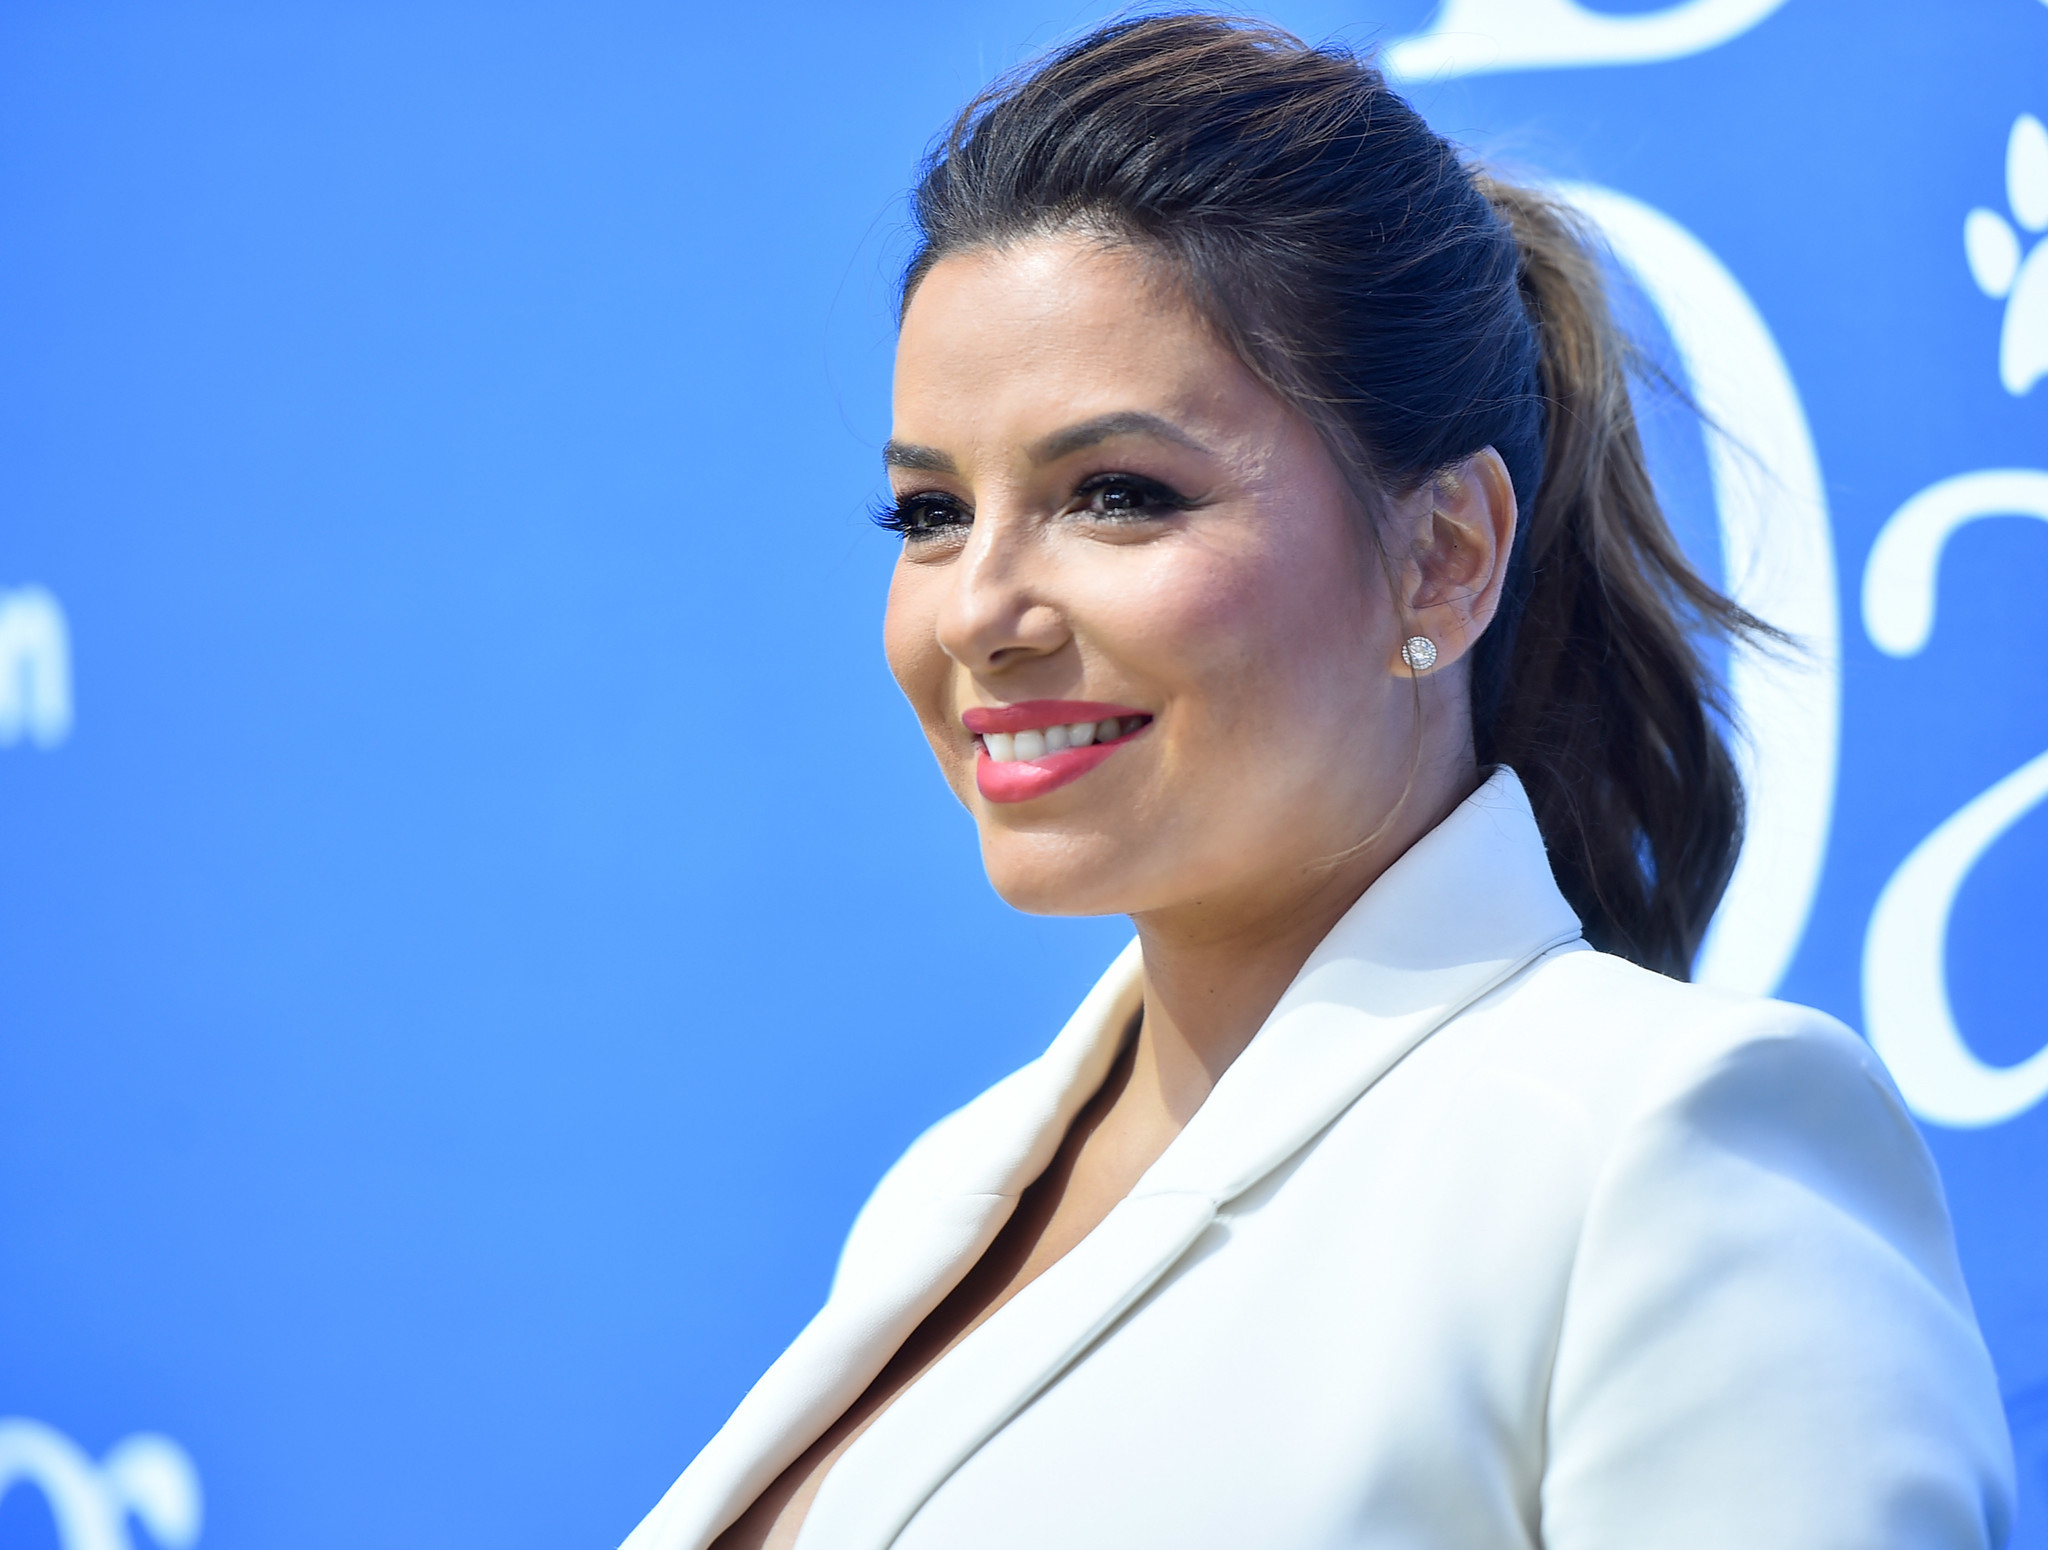 eva longoria joins dora  explorer   doras mother chicago tribune